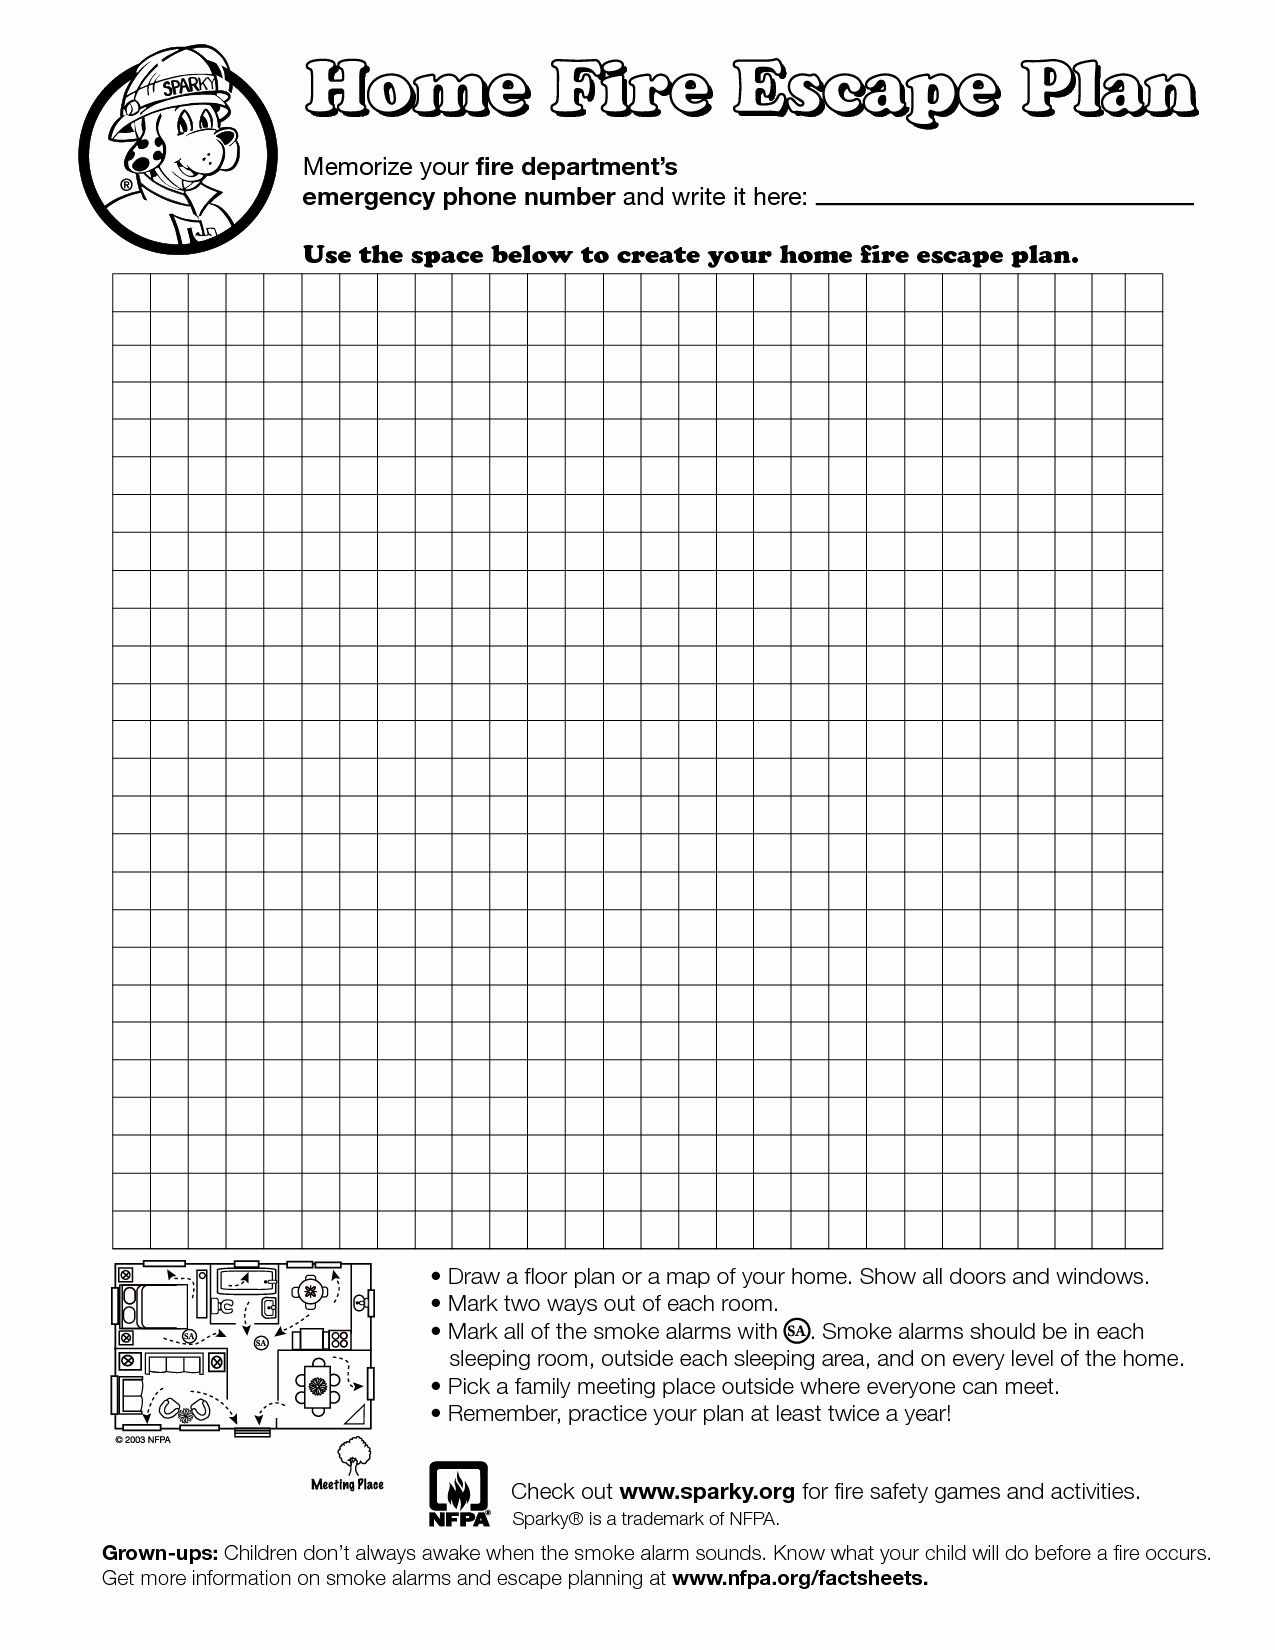 Fire Escape Plan Template Awesome Home Fire Escape Plan Template Education Fire Escape Plan Evacuation Plan Emergency Plan Printable fire escape plan template